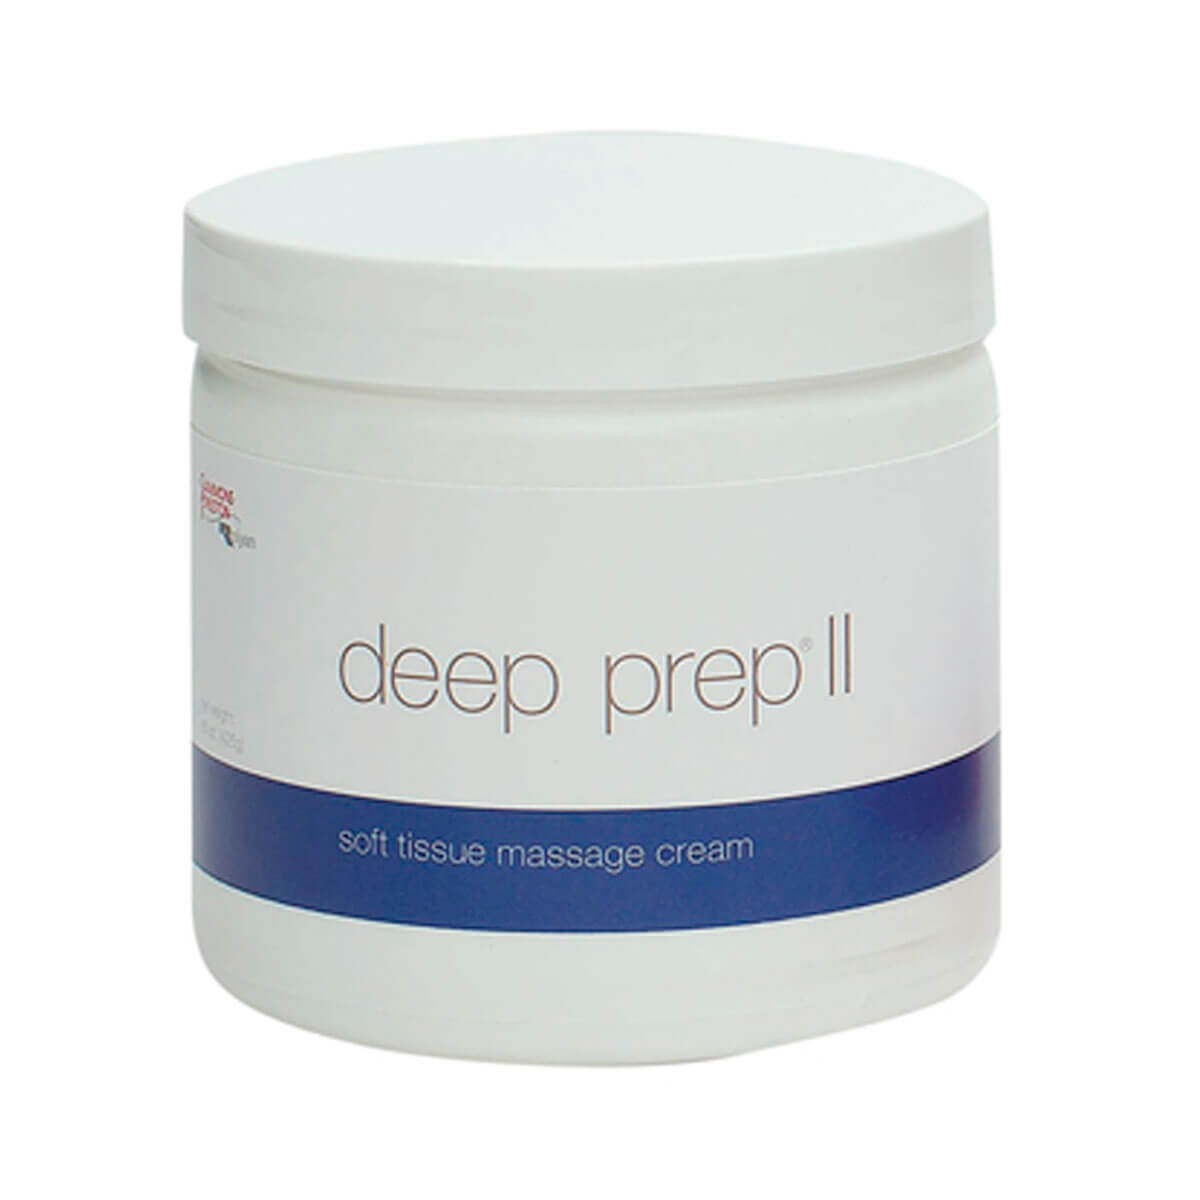 Rolyan Deep Prep® Massage Cream II cream blue label